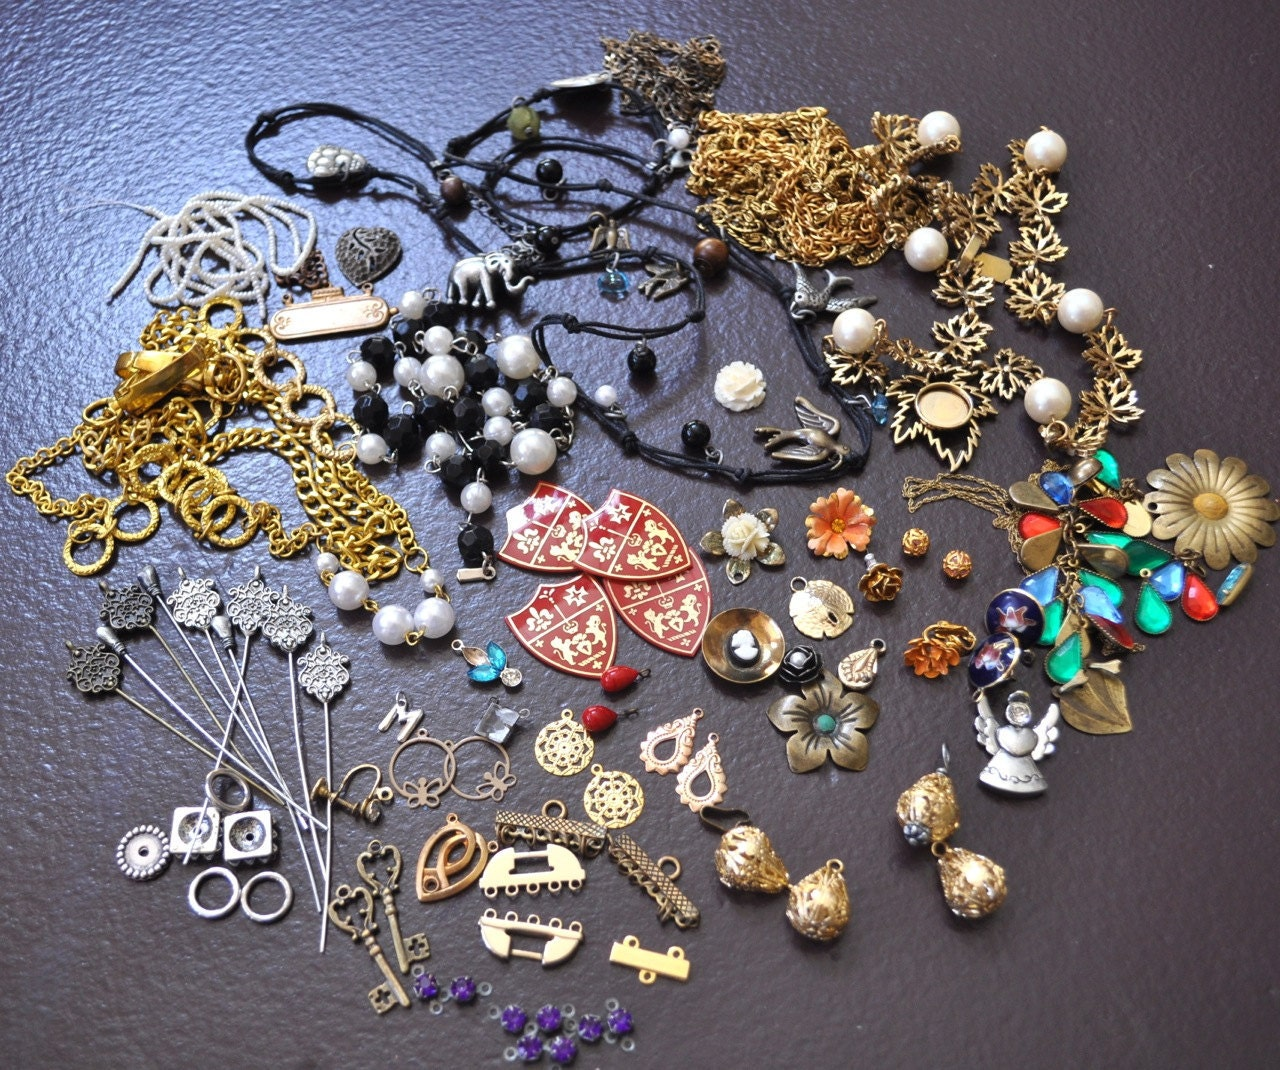 Vintage Jewelry Making Supplies 60